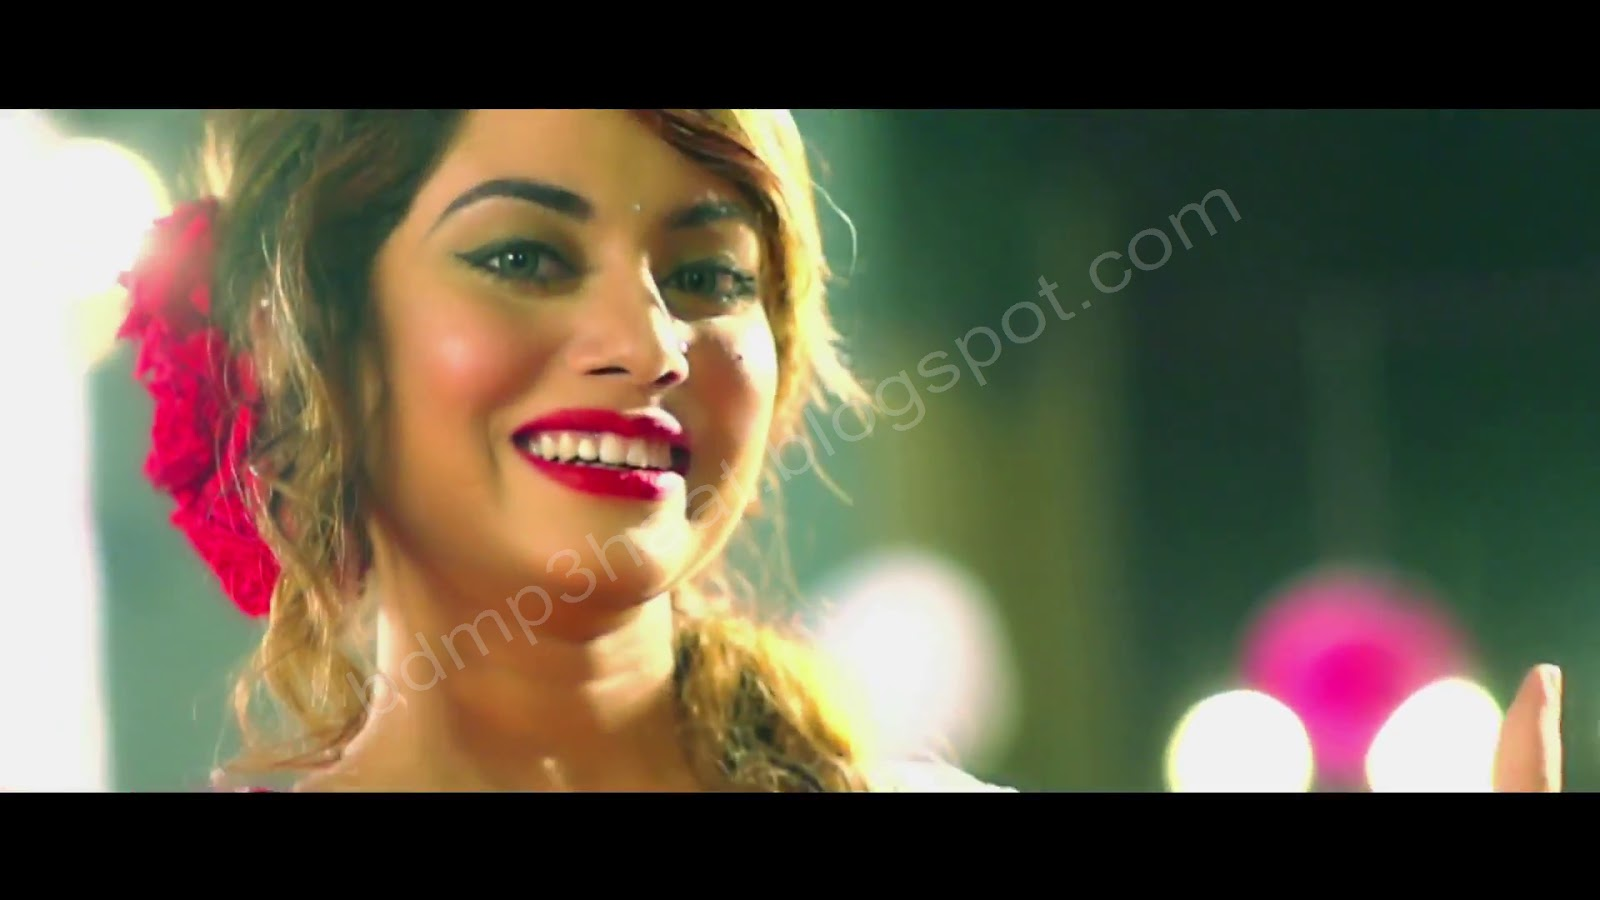 Boisakhi Rong New Video Song Imran Milon 2016 Bangla Music Video Free